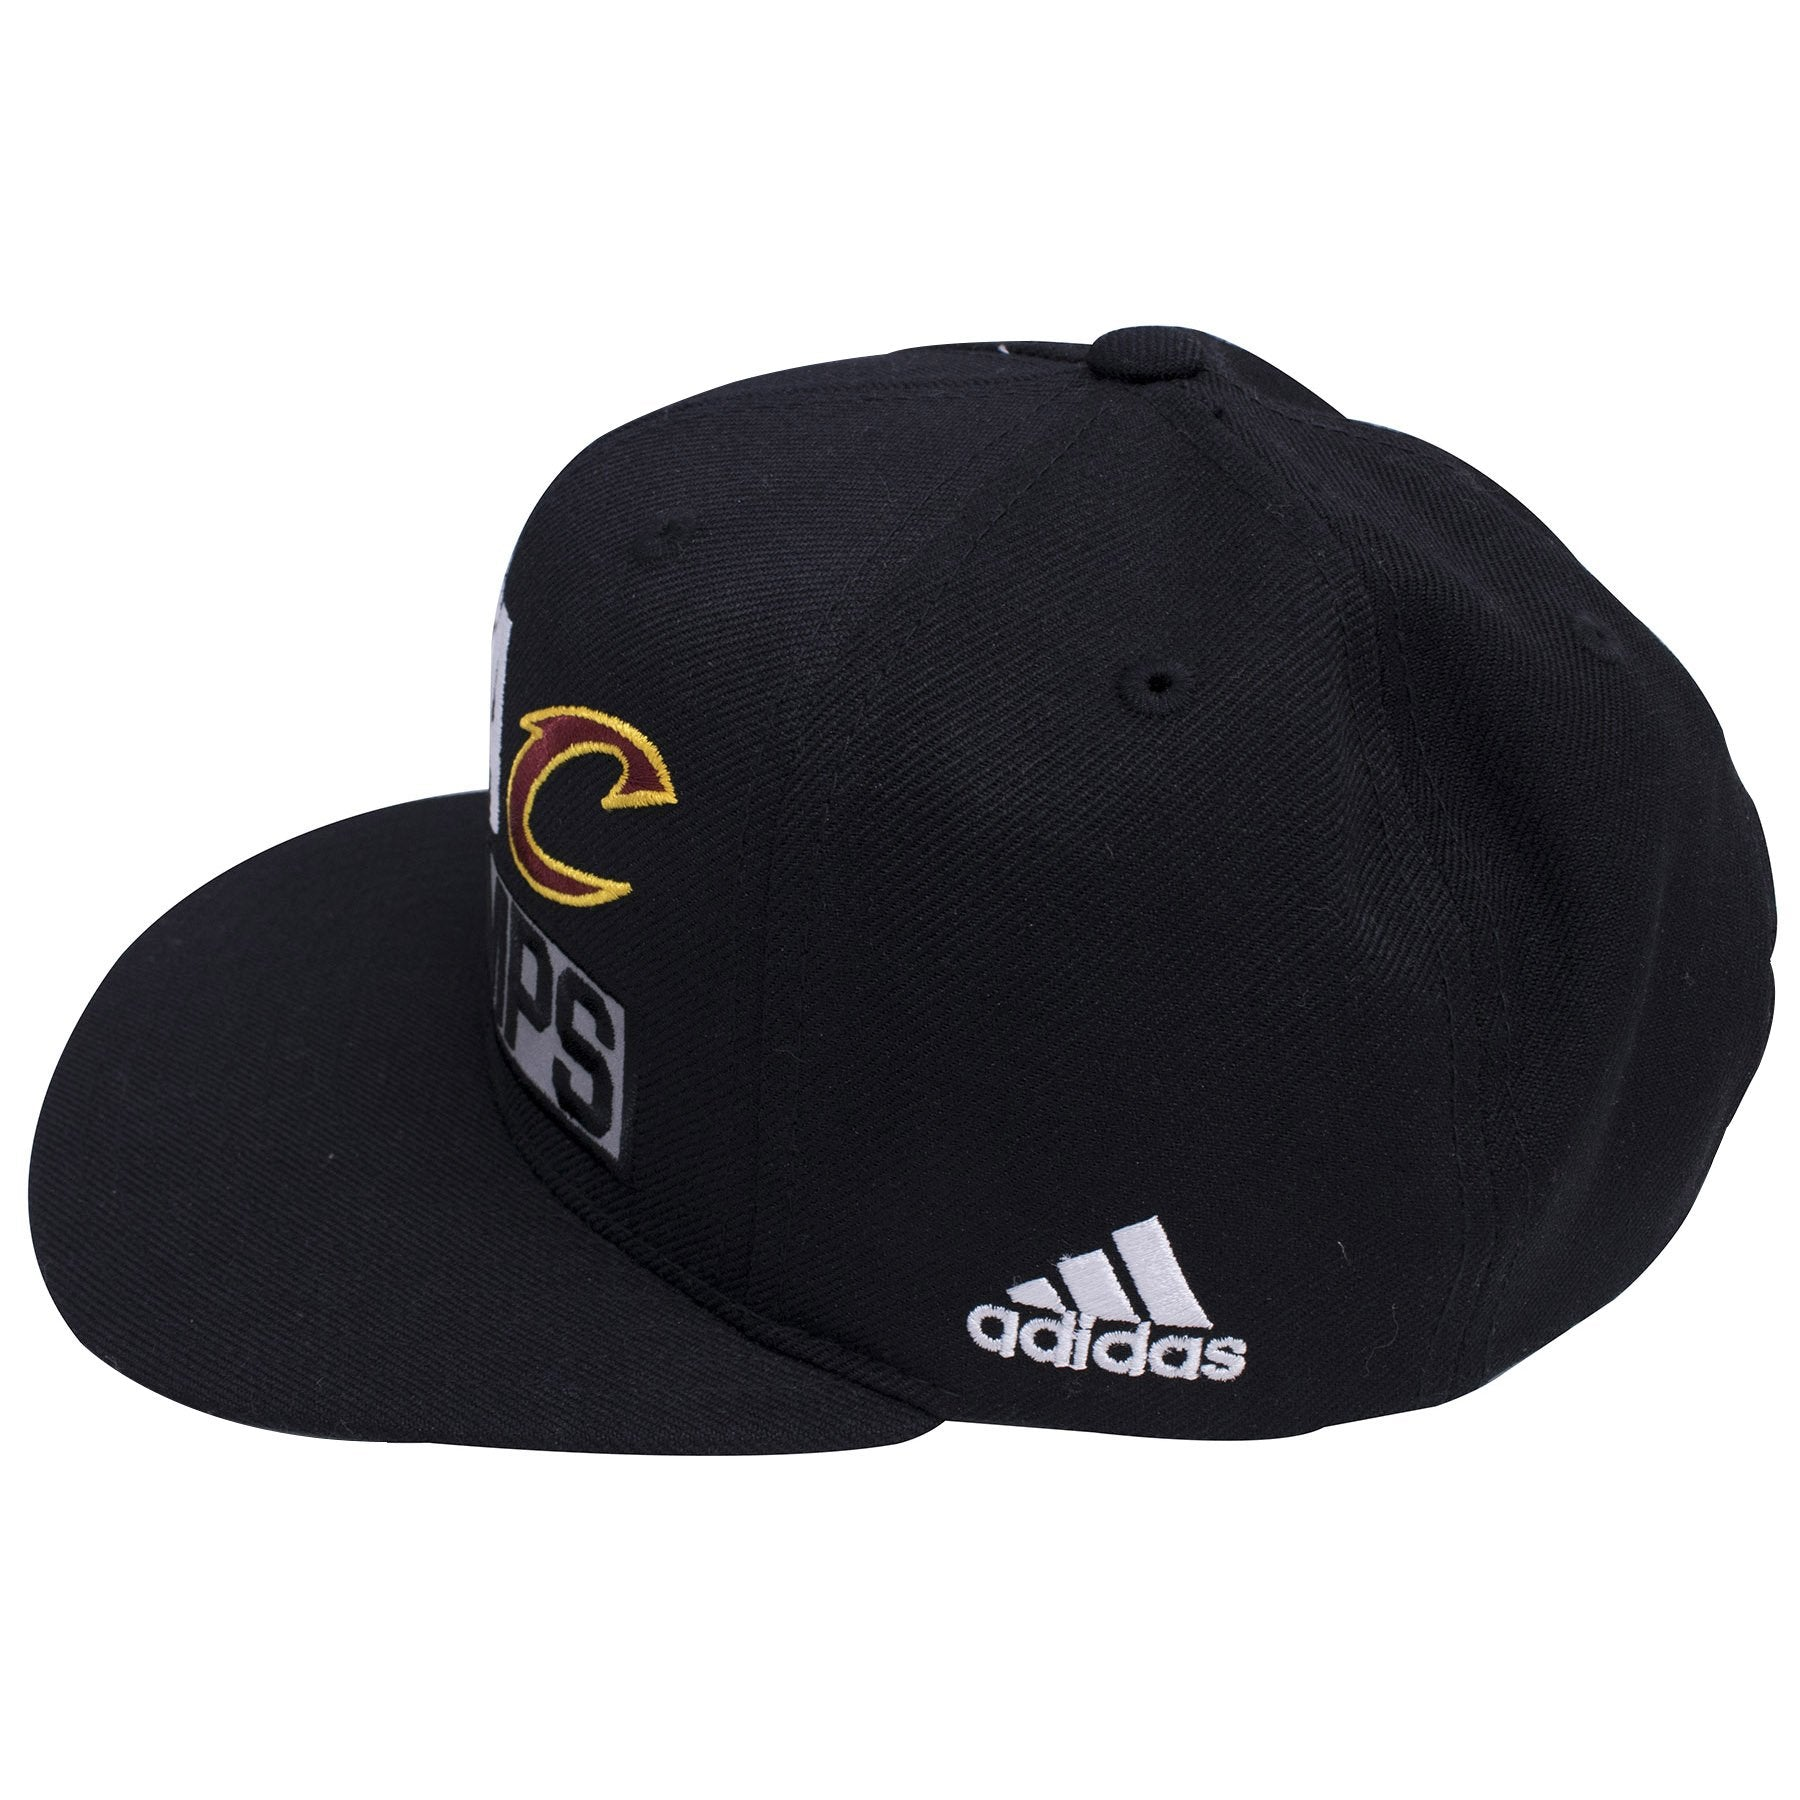 800657c7315d7 ... on the left side of the cleveland cavaliers 2016 NBA champions snapback  hat is a white ...